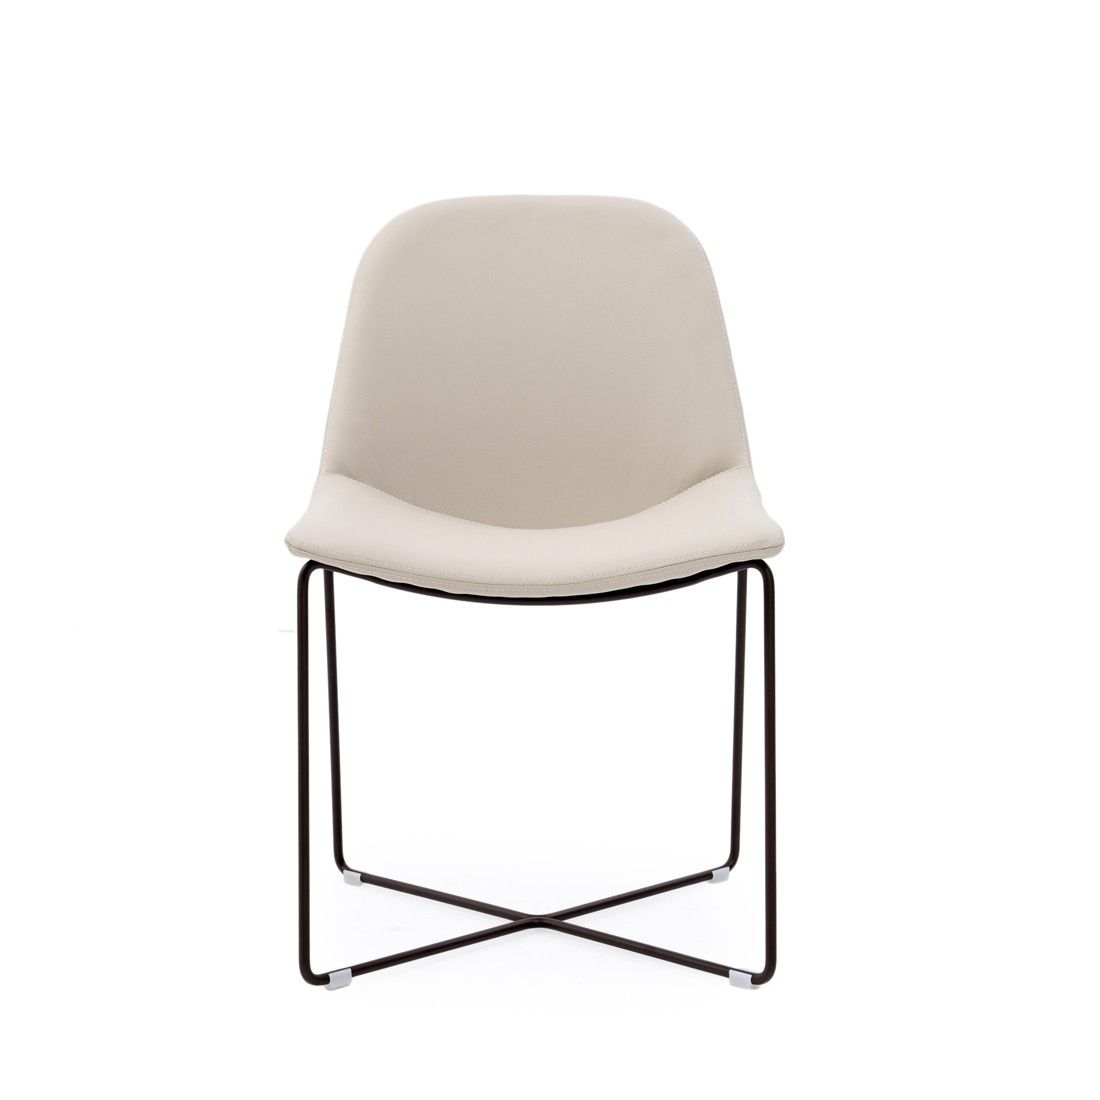 Ecko Chair A Vintage Design Made New! The Ecko Features Trendy Lines, For A  Chic Pick That Will Add Some True Flair To Your Space.